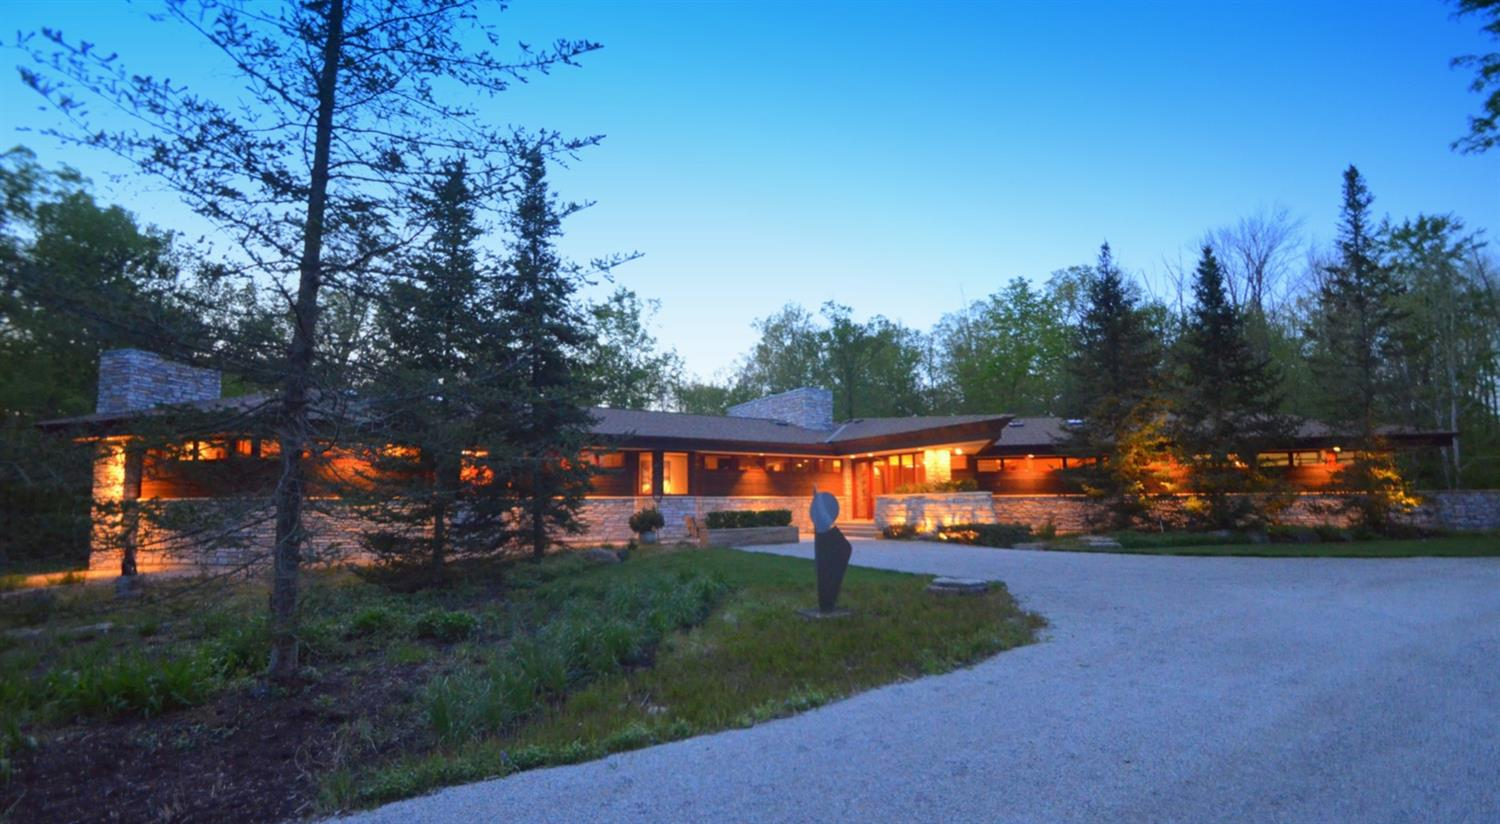 Once in a lifetime opportunity to live in an extremely functional piece of art!  The perfect intersection of nature and architecture.  The home is located in the most secluded lot in Timberwood Lake, a small neighborhood of 30 homes that range from $500,ooo to $1.2 Million. The community includes access to a 6-acre lake stocked with bass, striped bass, bluegill and catfish.